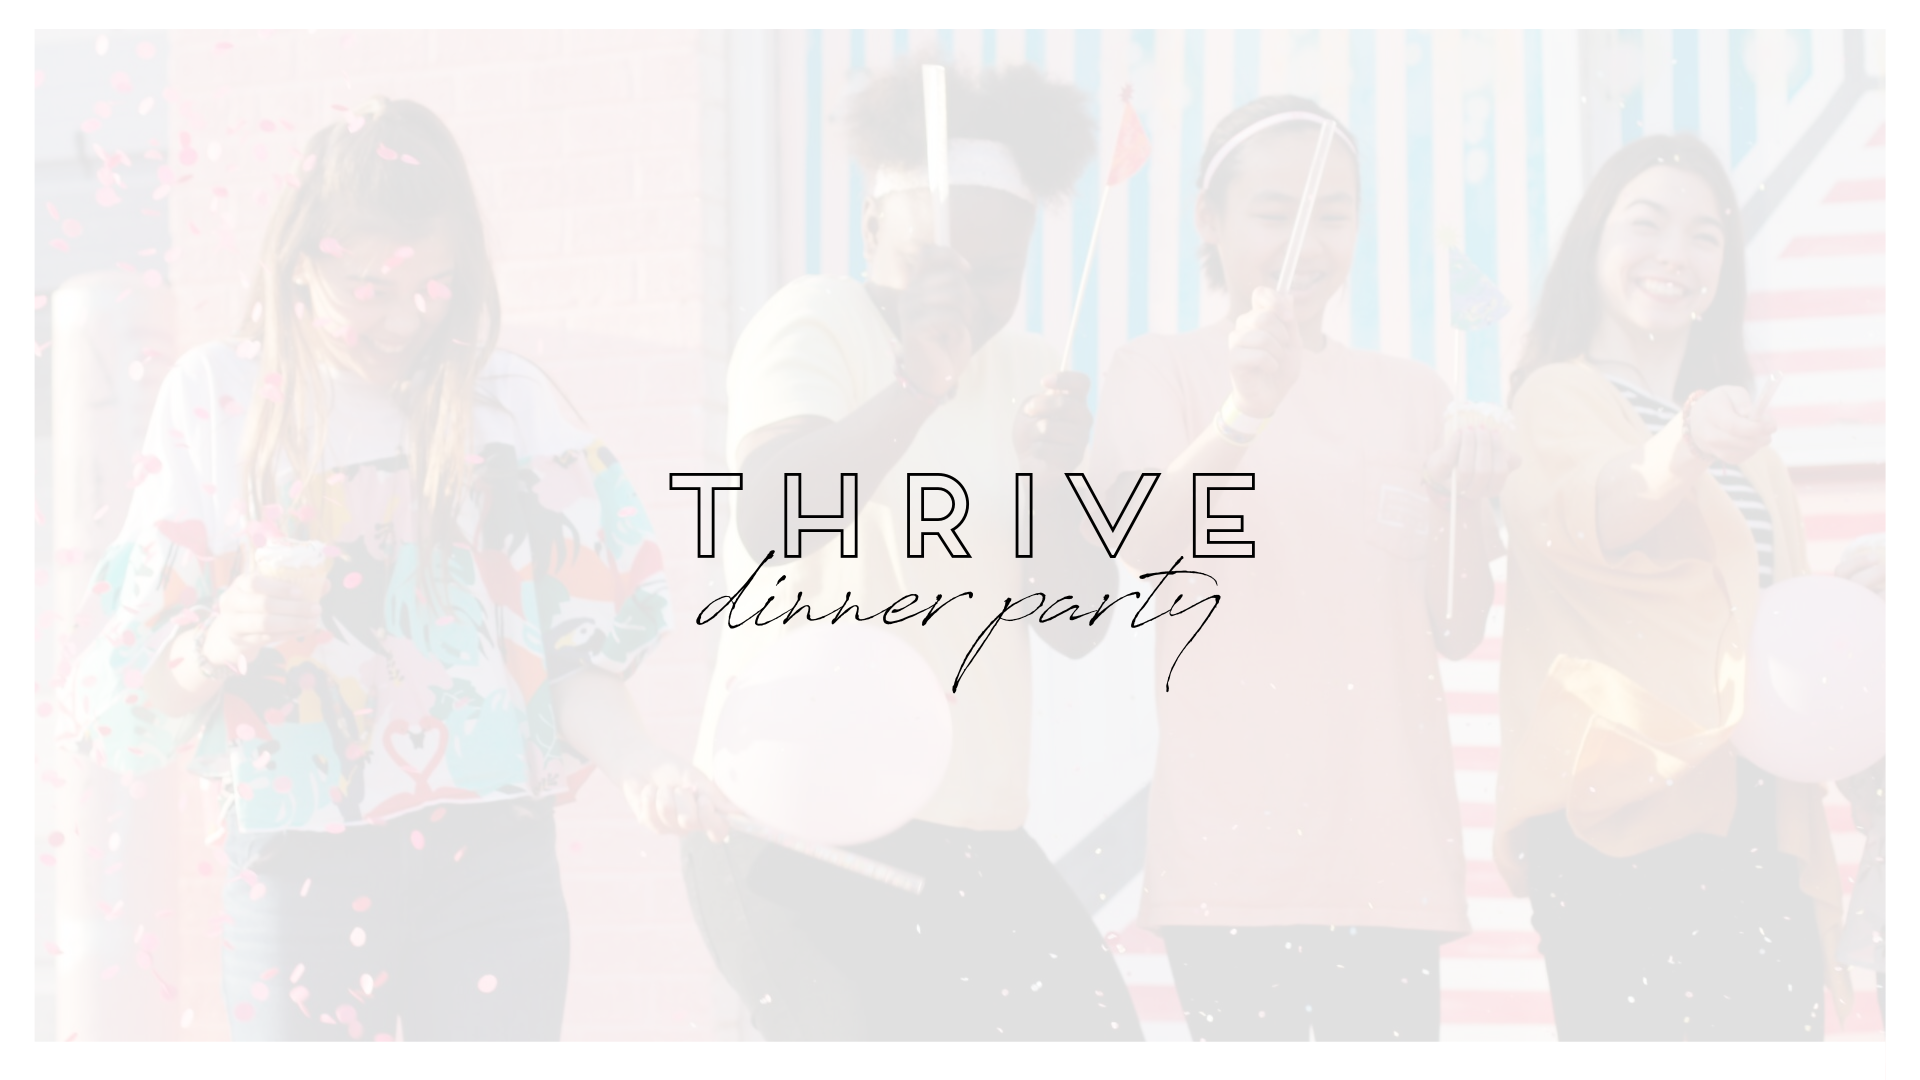 Beads Of Good ·Thrive Dinner Party Invitation (1).png